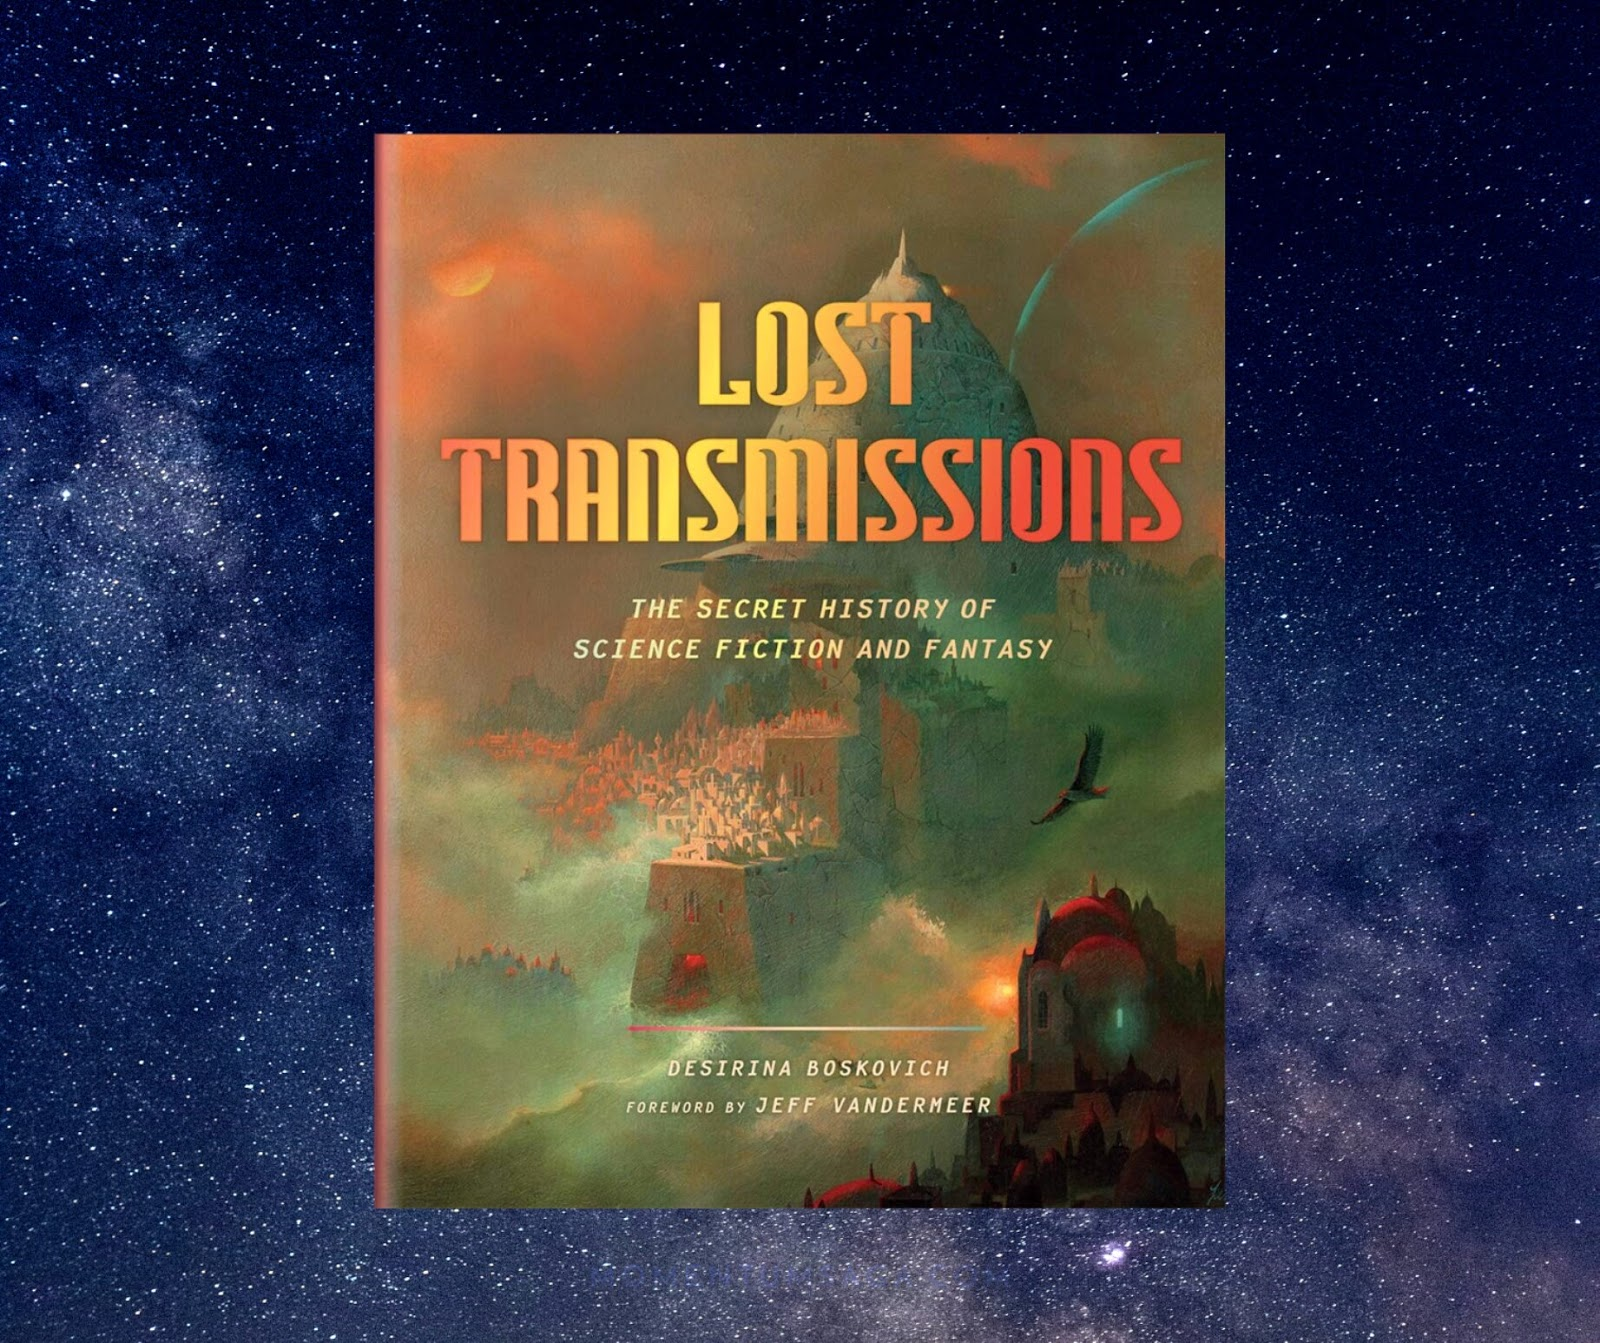 Resenha: Lost Transmissions, The Secret History of Science Fiction and Fantasy, de Desirina Boskovich